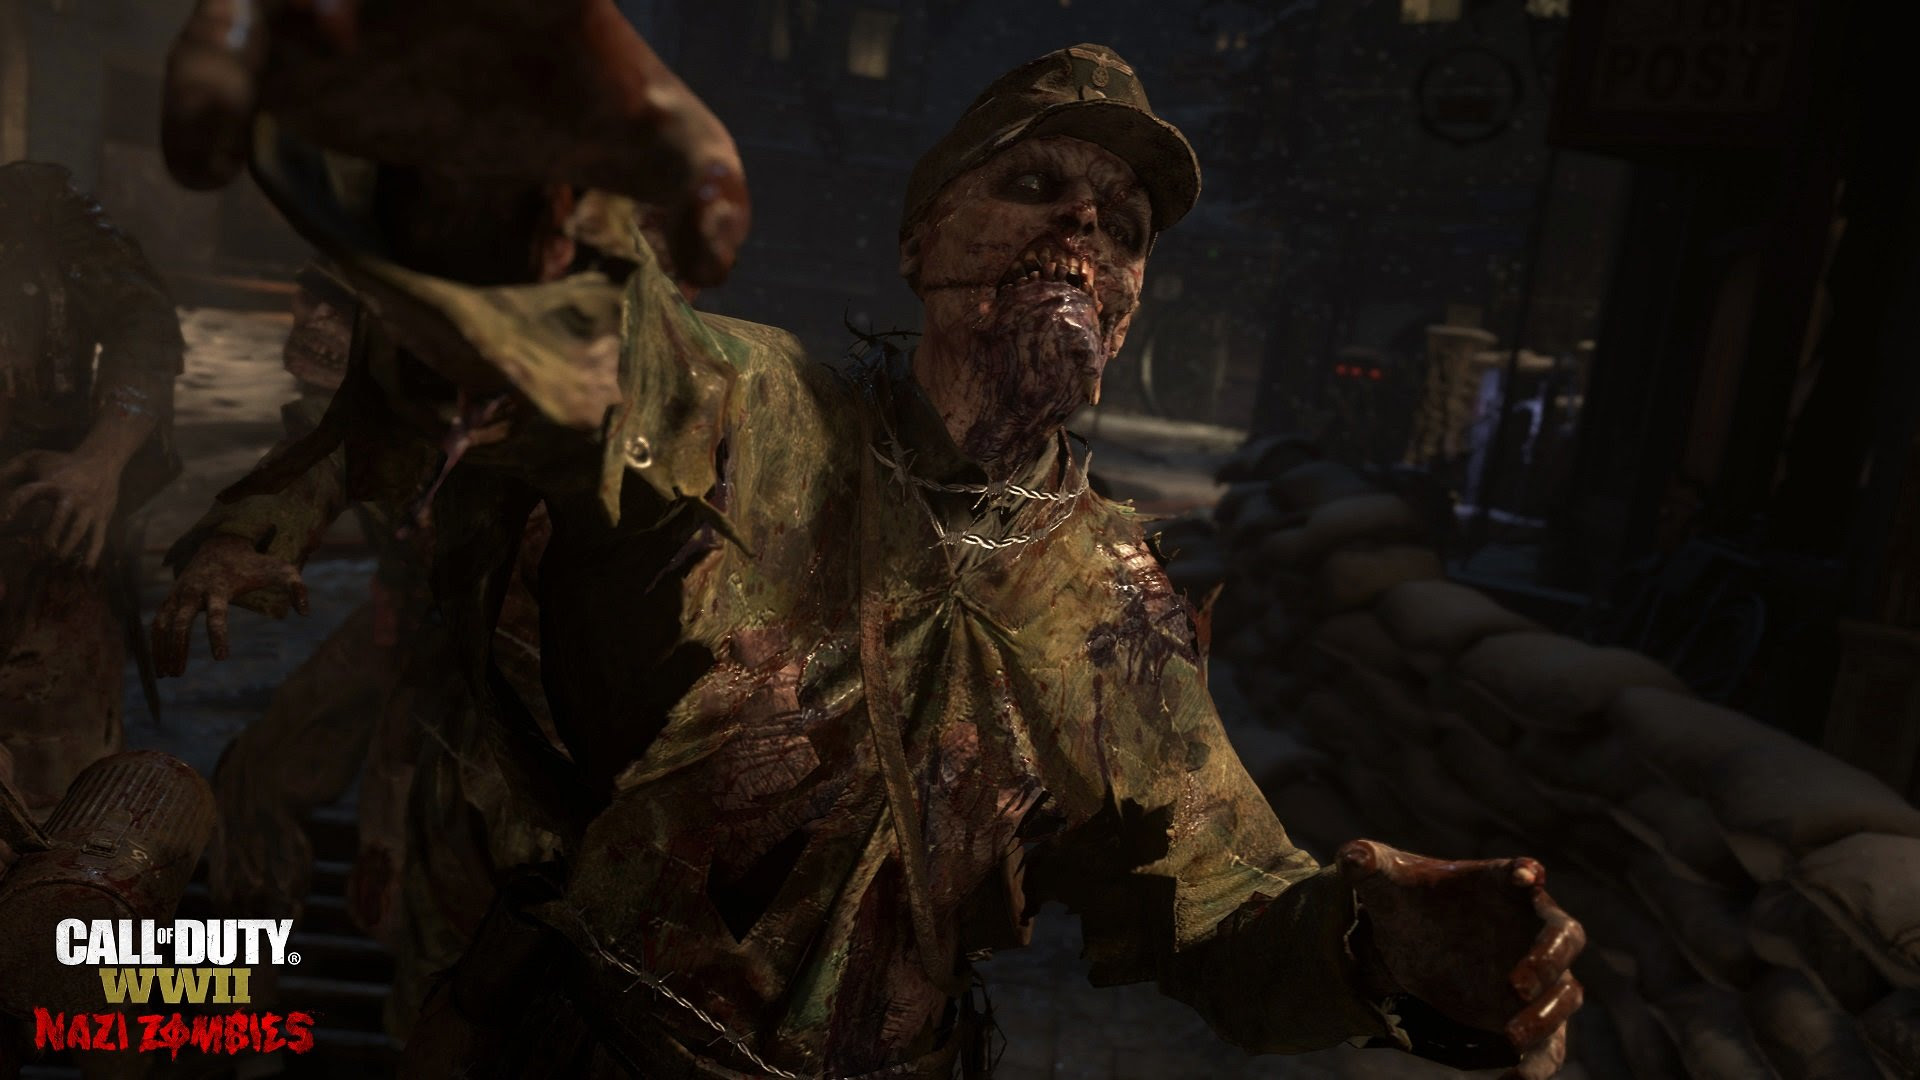 Here's a superb first look at Call of Duty: WWII's Nazi Zombies screenshot